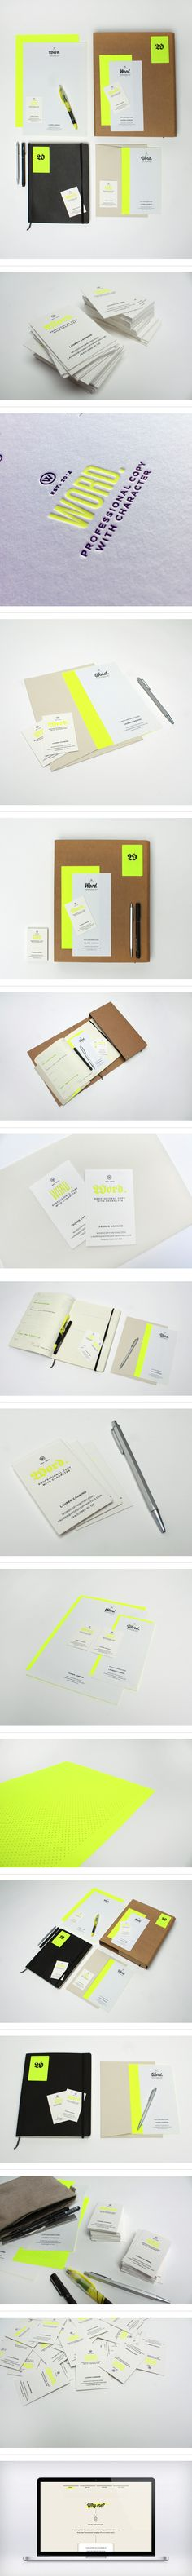 Word. by Passport, via Behance